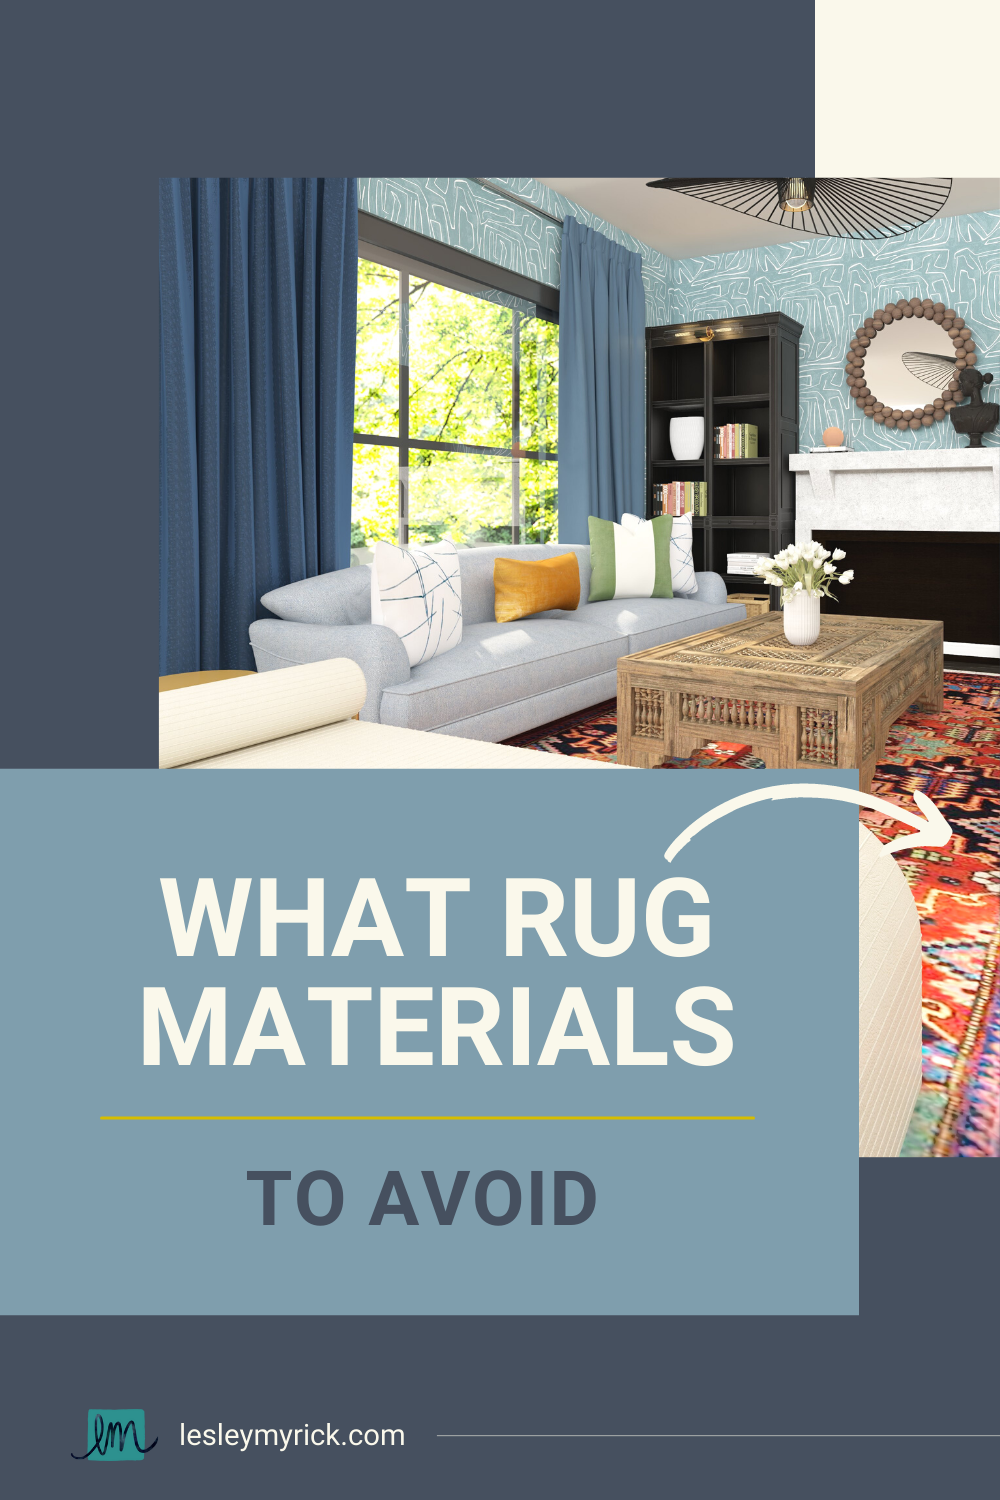 Learn what materials are best for rugs - and what to avoid! - in this guide from Lesley Myrick Interior Design.